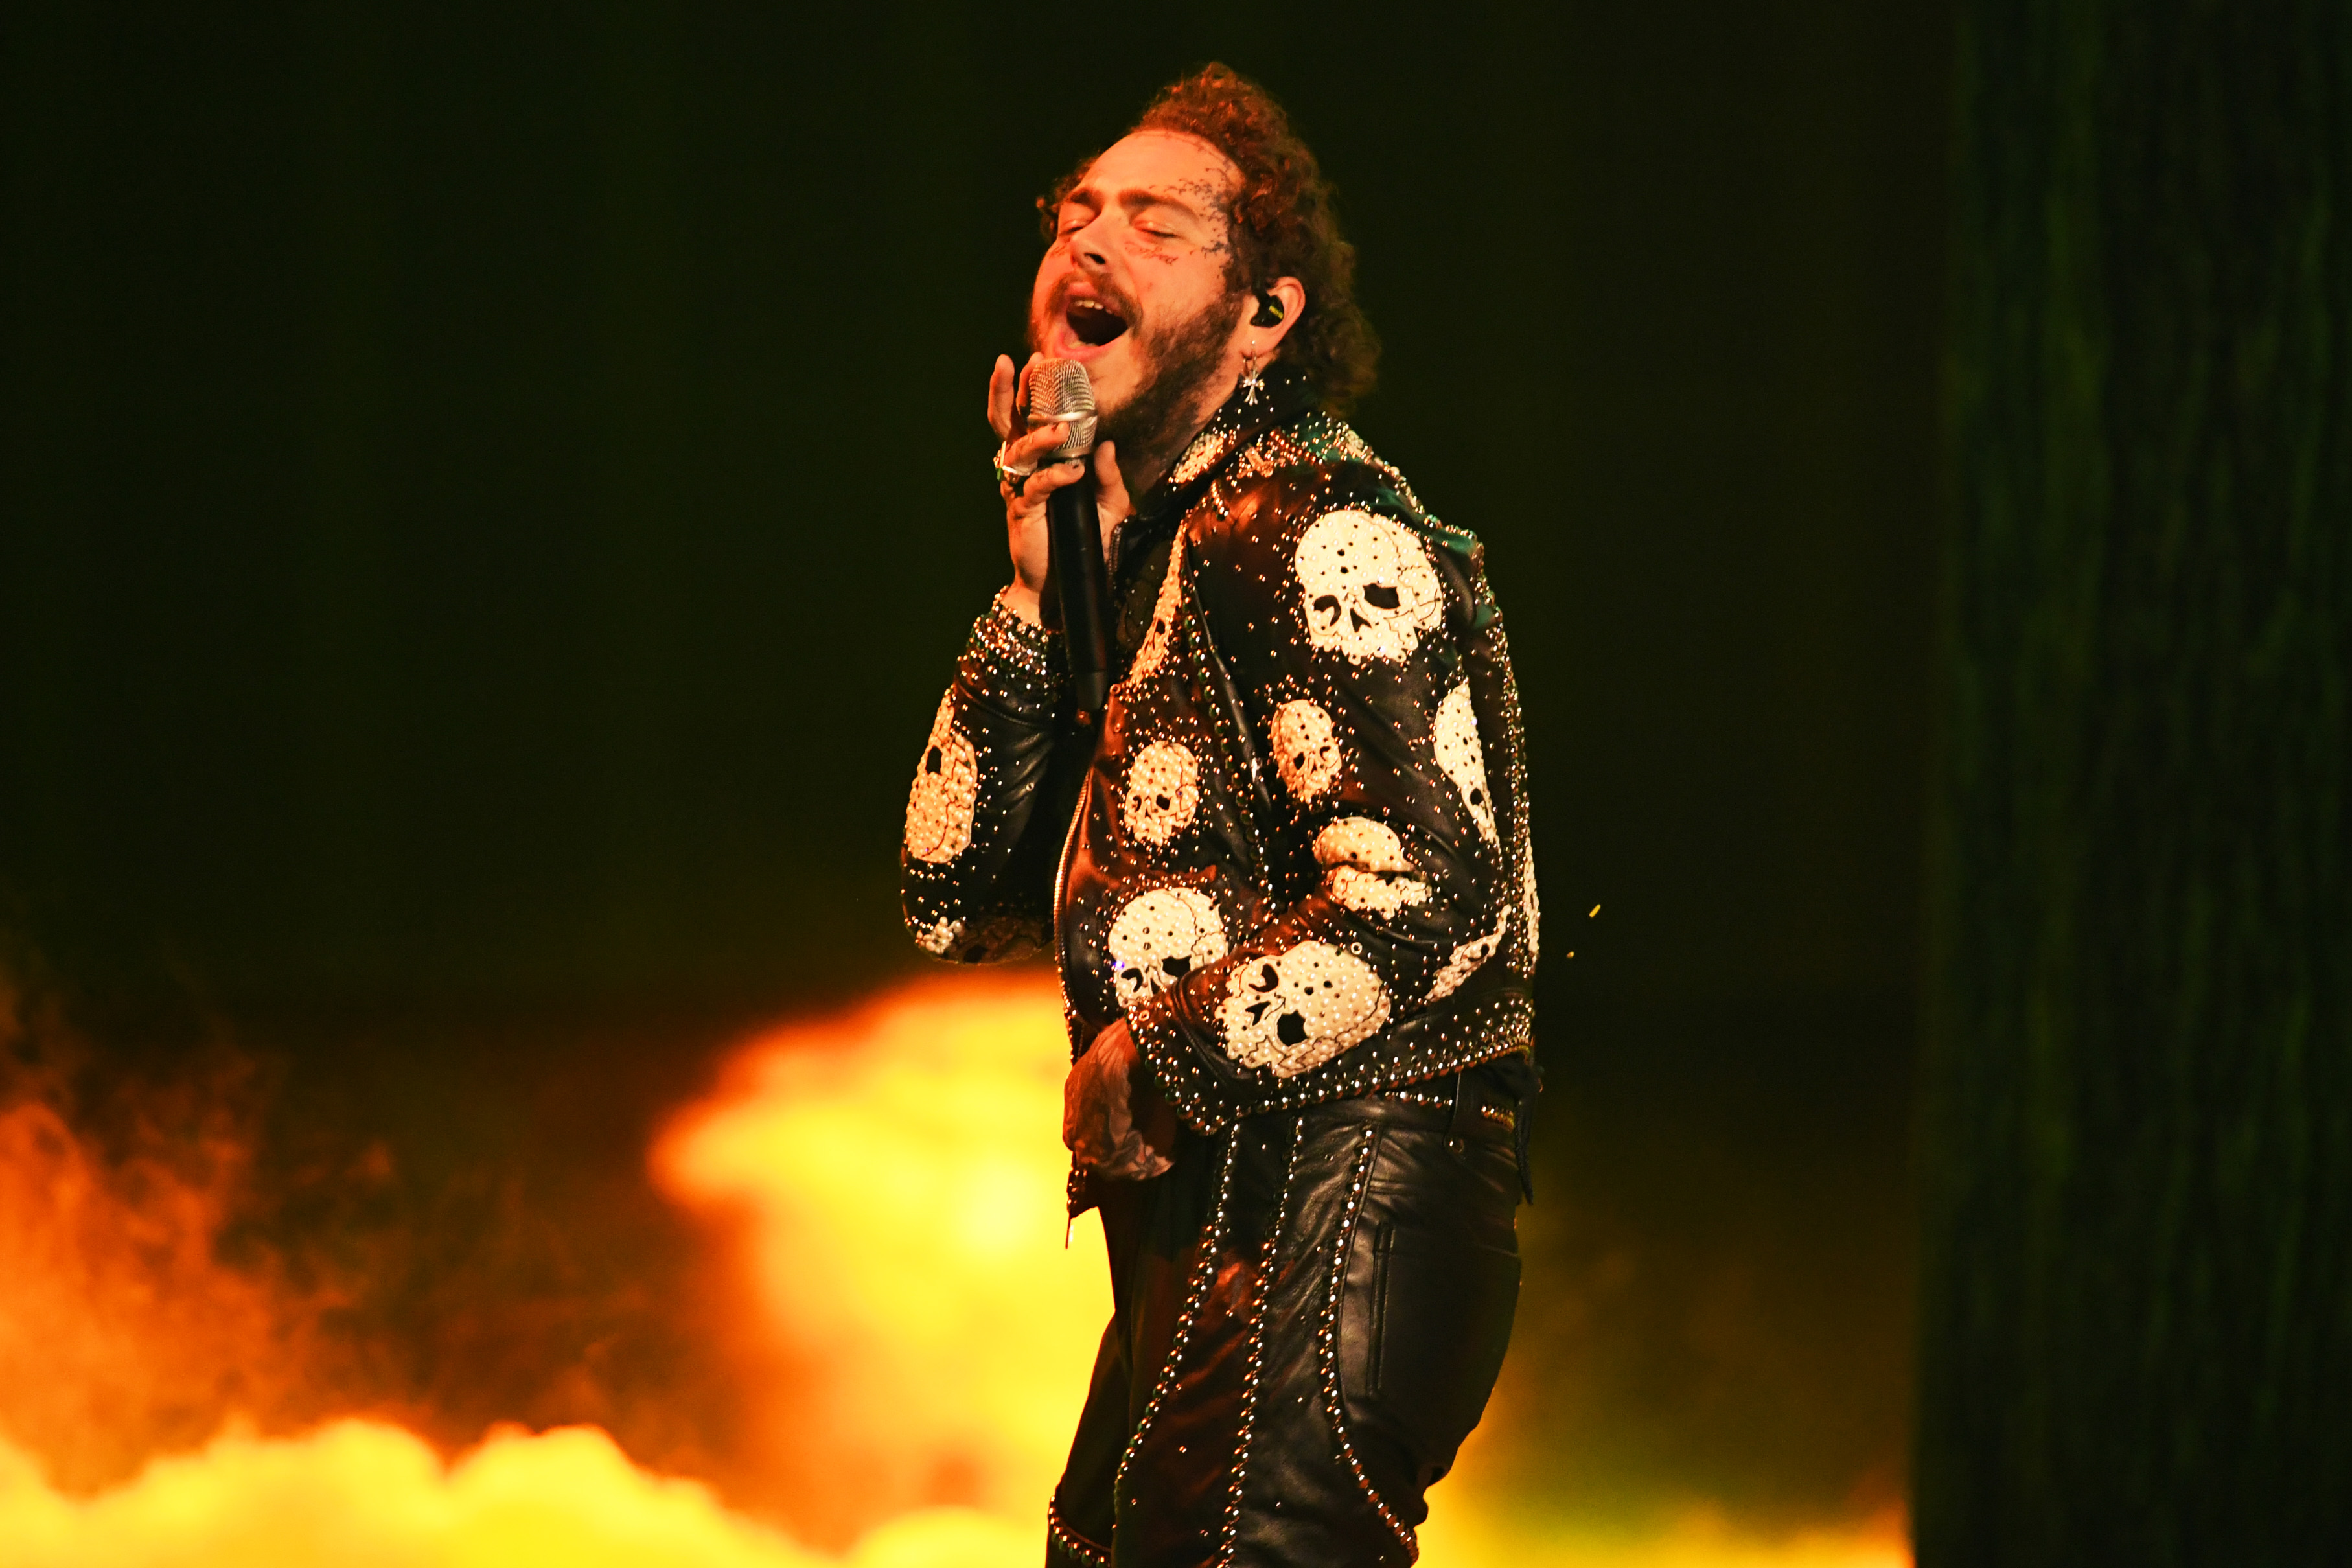 Post Malone performs at the 2019 American Music Awards in Los Angeles